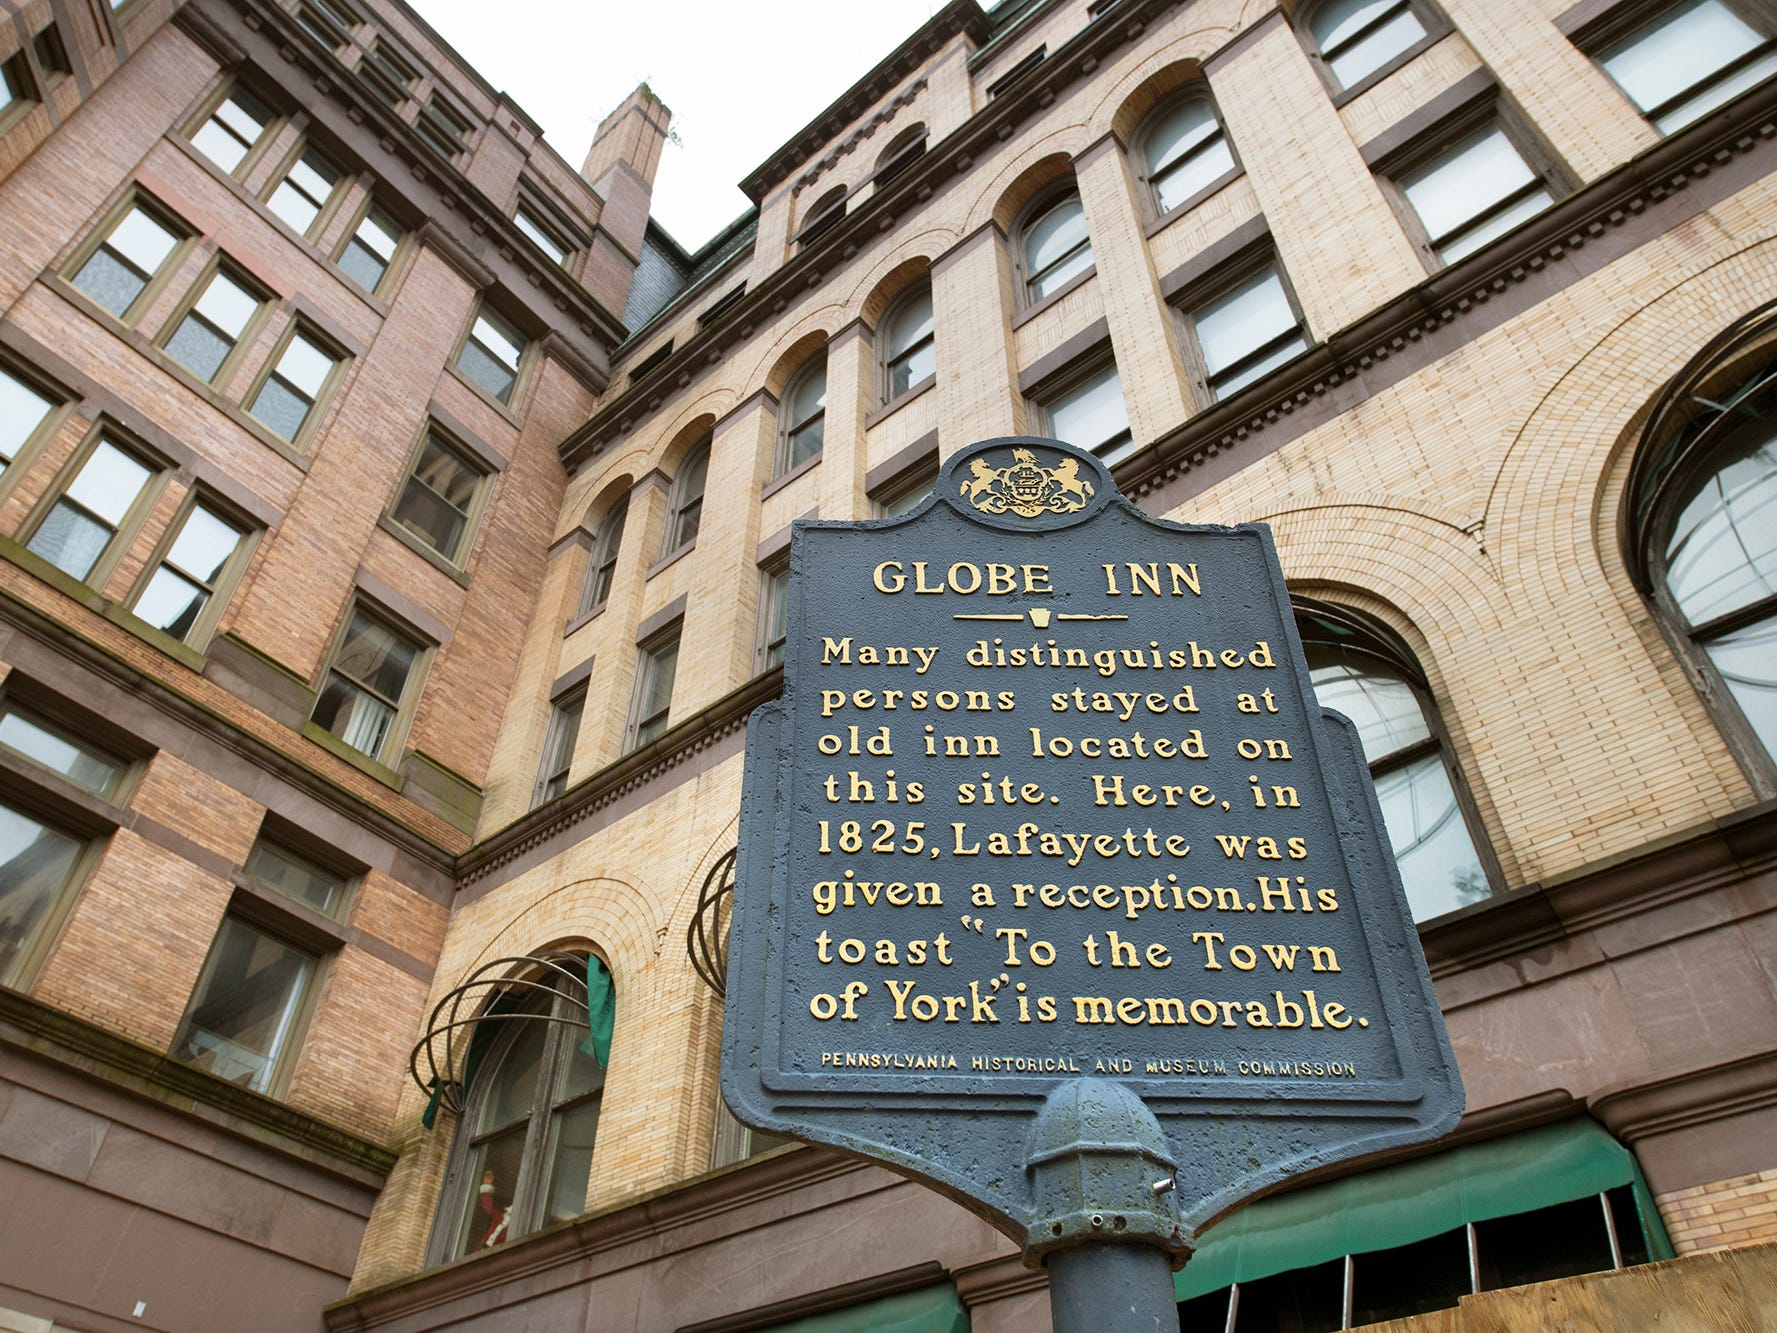 "A historical marker for the Globe Inn us in front of the Rupp-Schmidt Building at 2 West Market Street in York talks about a toast ""To the Town of York"" by Lafayette in 1825. The Inn was demolished prior to the 1892 construction of the current building."